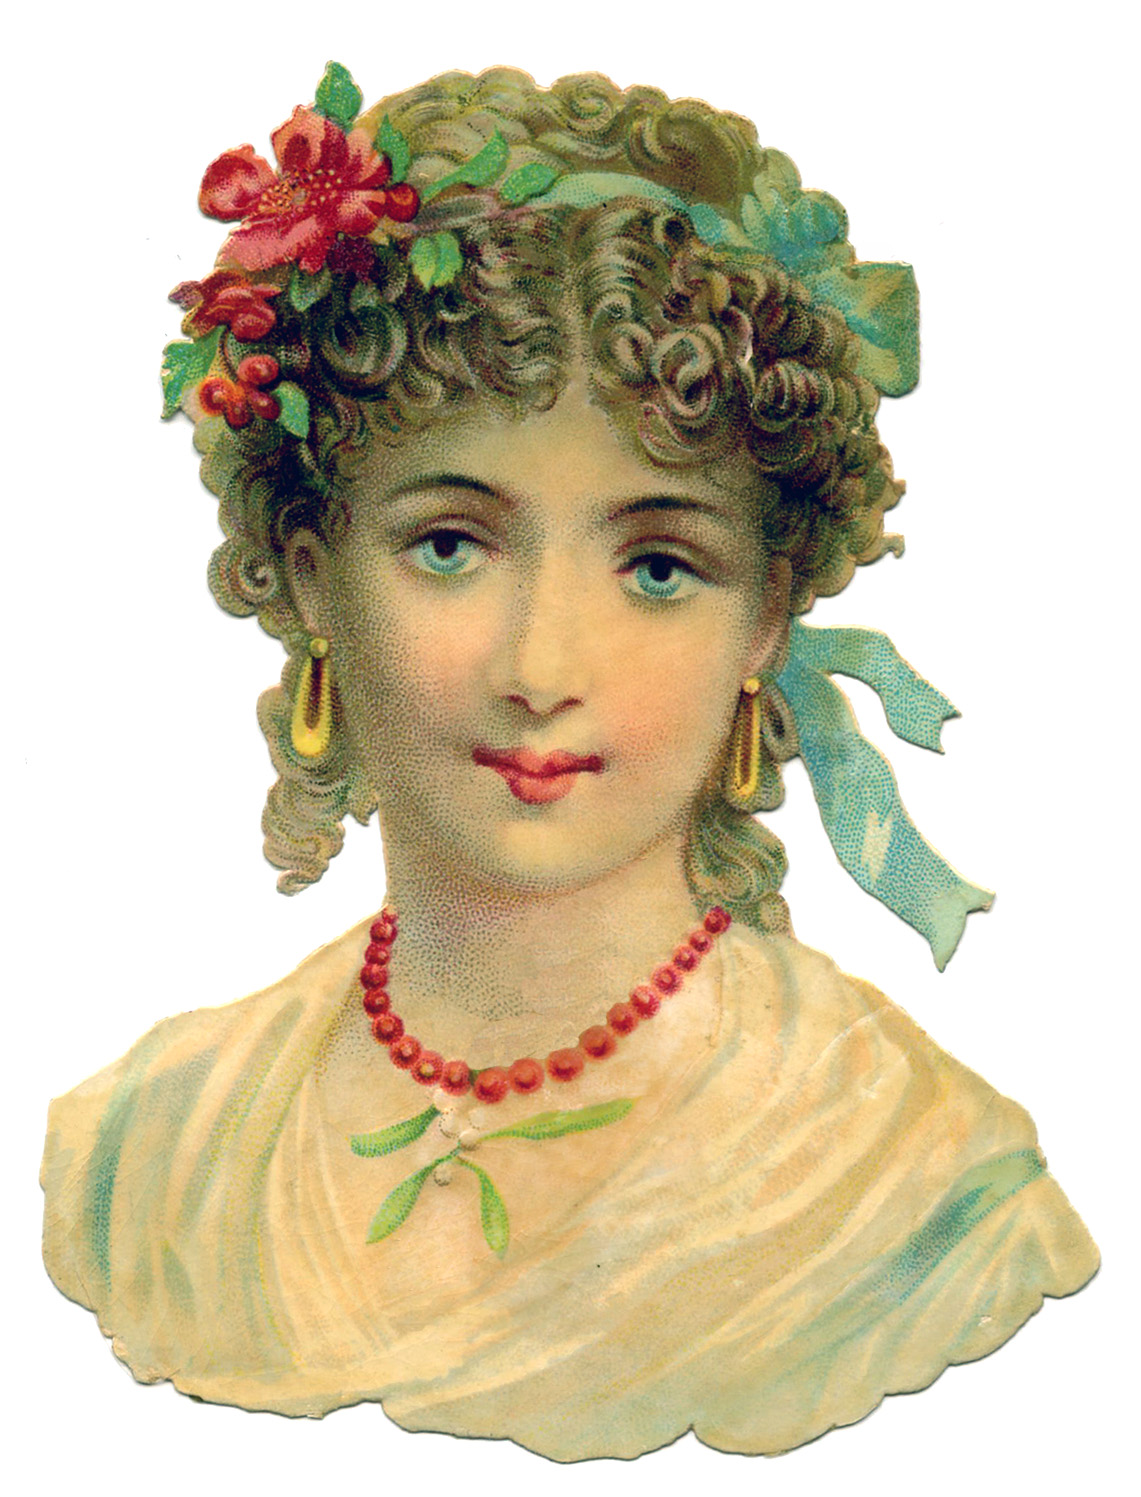 http://thegraphicsfairy.com/wp-content/uploads/blogger/-sTSvbQxpPME/T1LO-KyOzVI/AAAAAAAAQvw/9V9MQY7I9r0/s1600/lady-bust-Vintage-Image-GraphicsFairy.jpg